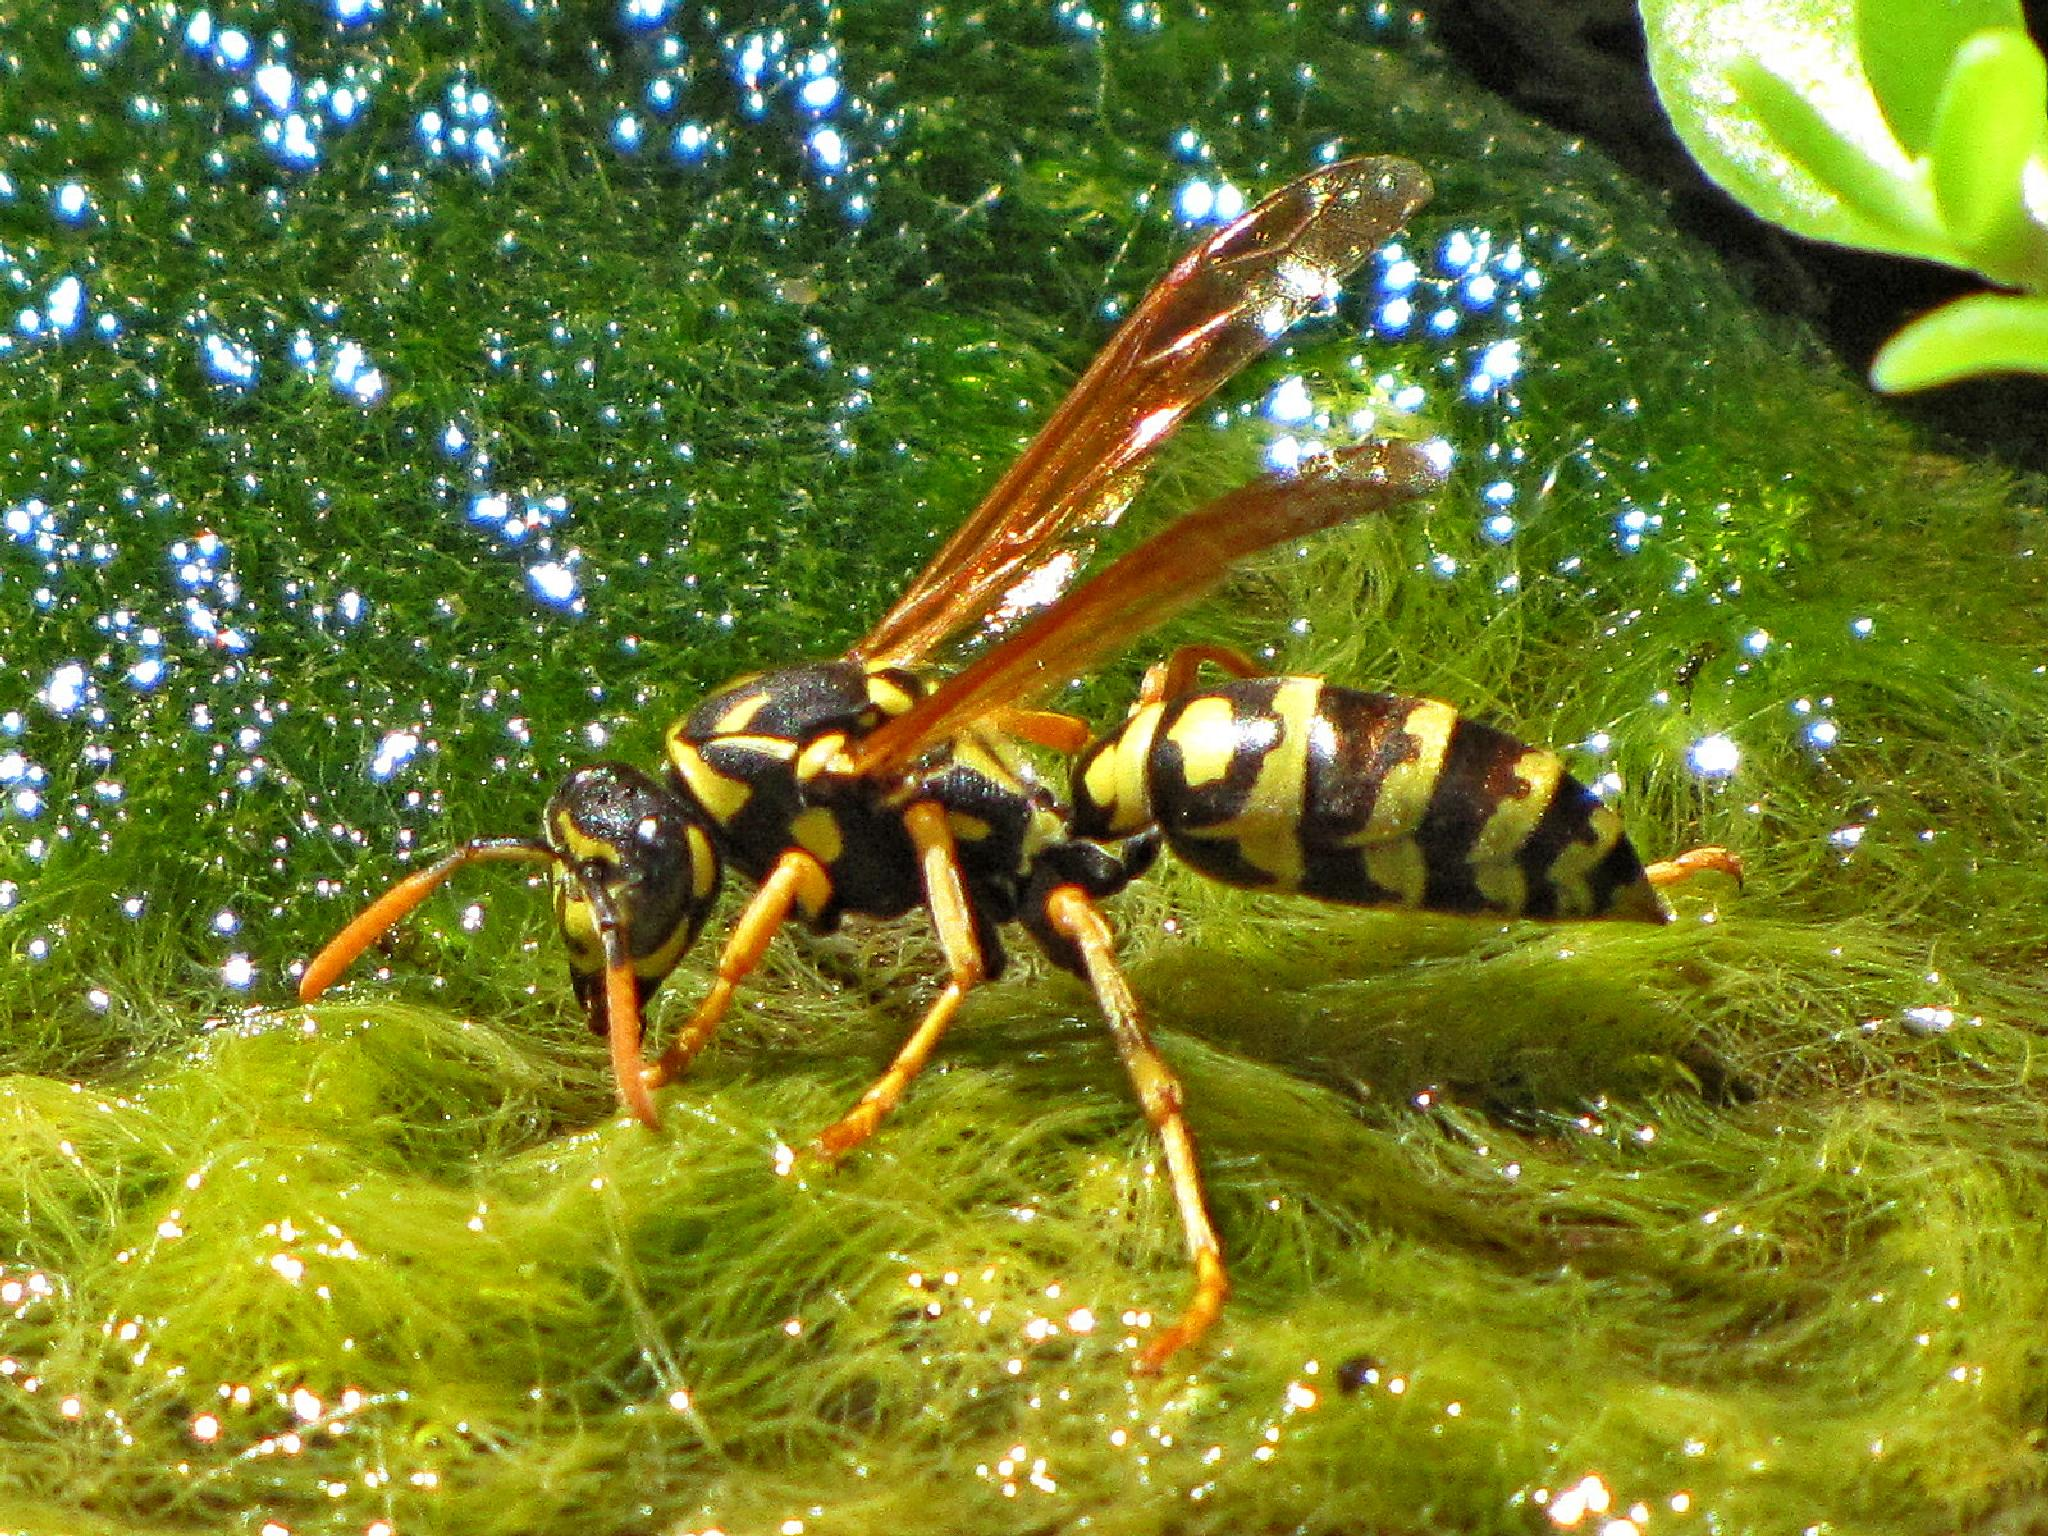 Wasp by MikeCarr